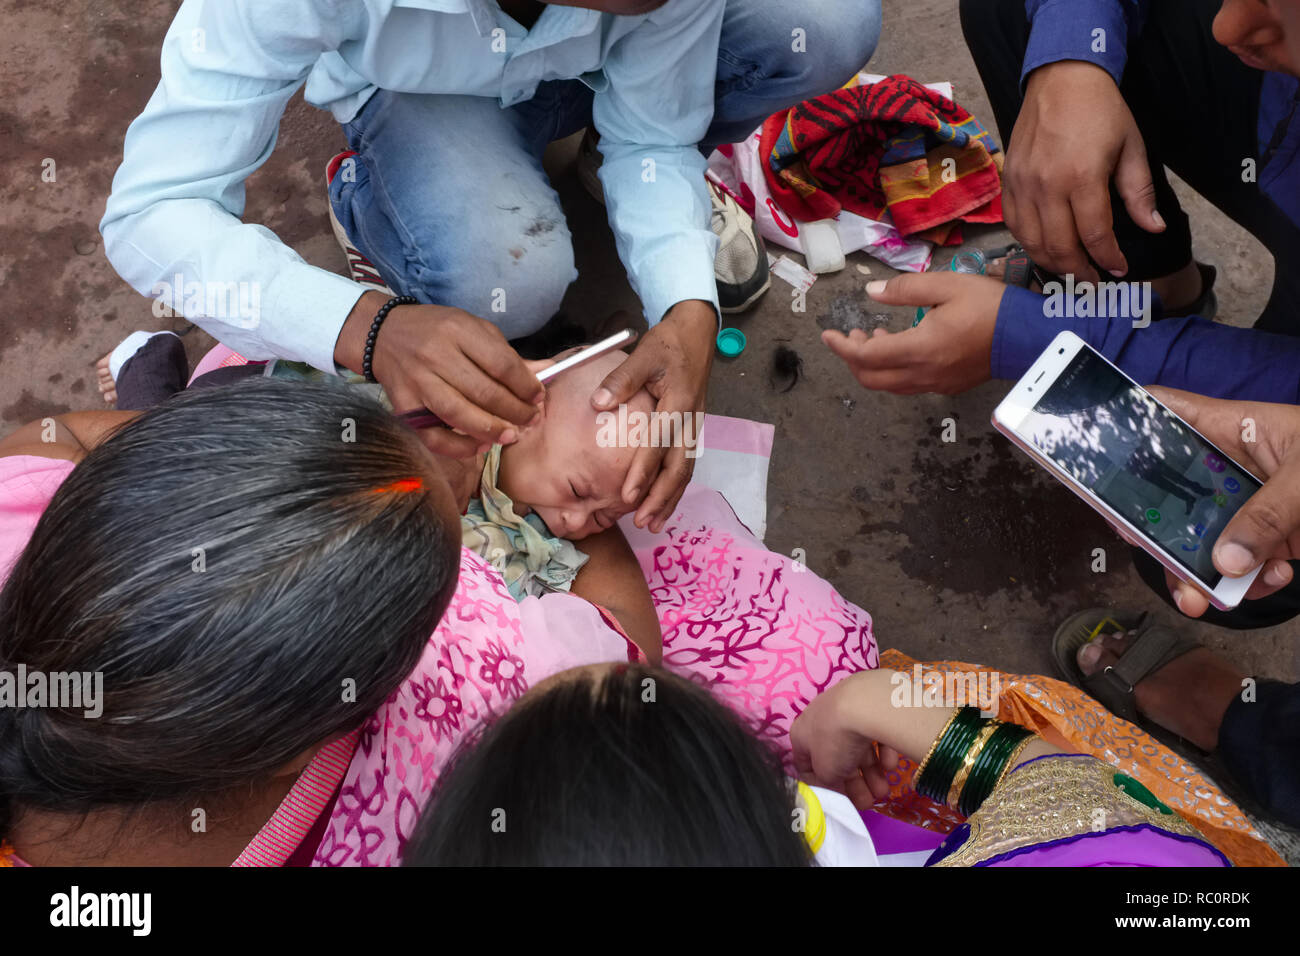 Hindu Baby Ritual High Resolution Stock Photography and Images - Alamy